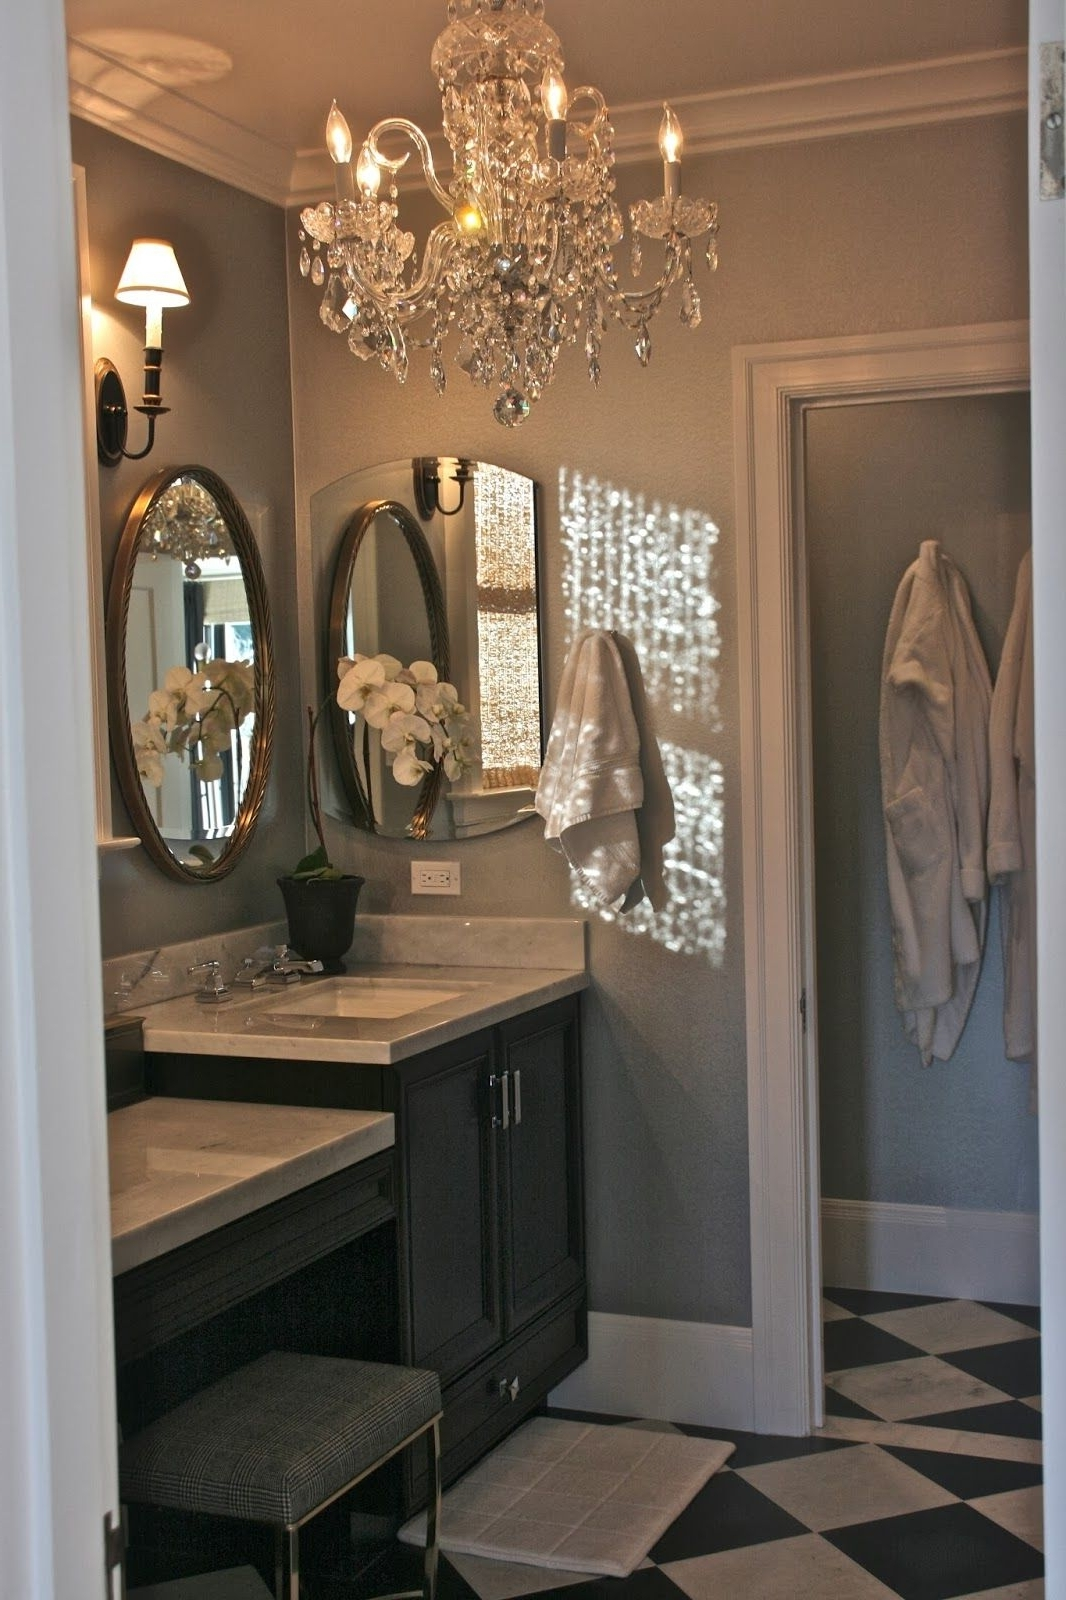 Chandelier Bathroom Ceiling Lights Intended For Popular Elegant Retreat. . (View 13 of 20)